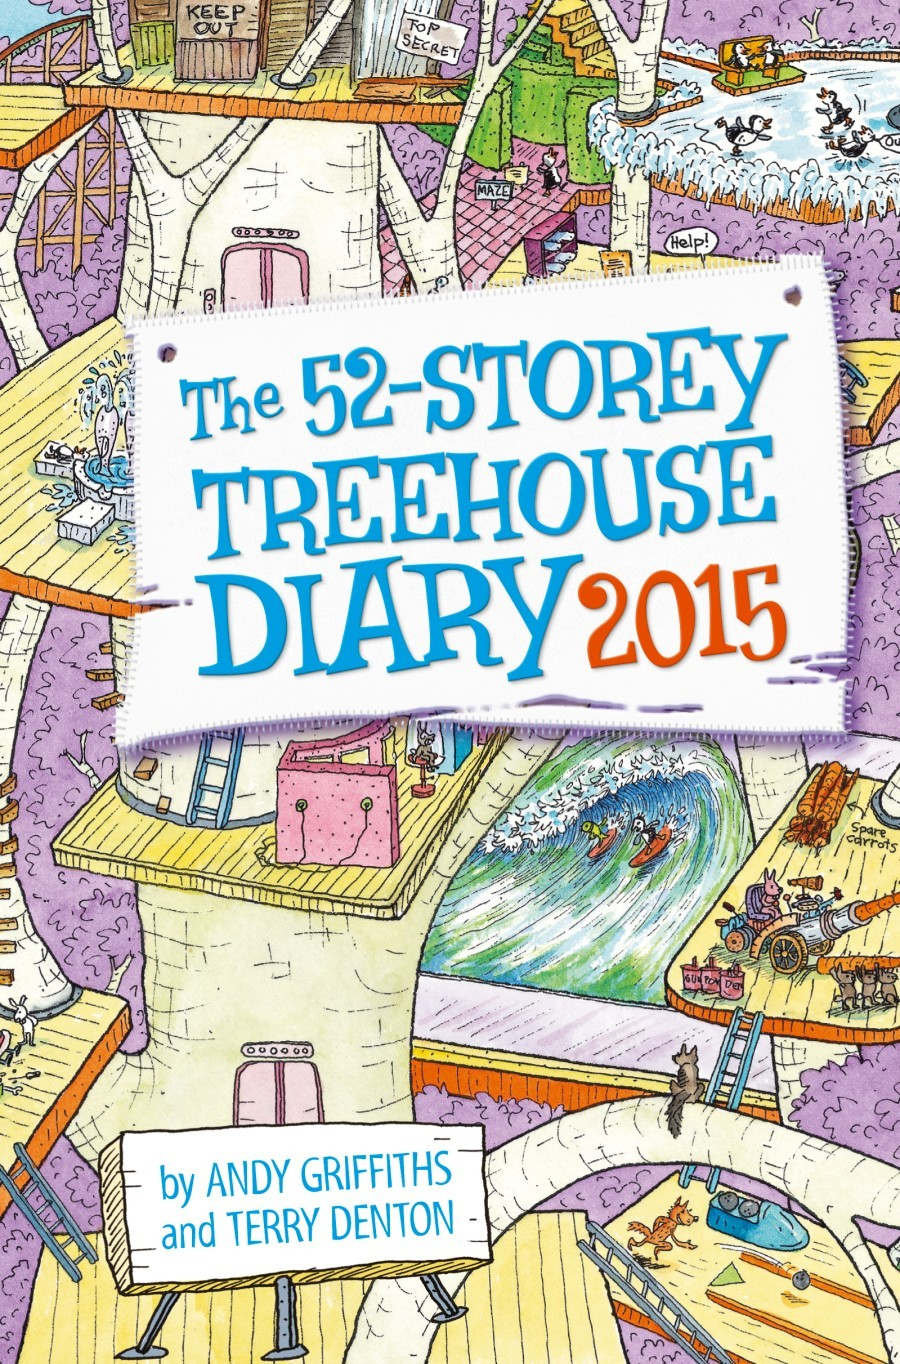 The 52-Storey Treehouse Diary 2015 by Andy Griffiths & Terry Denton